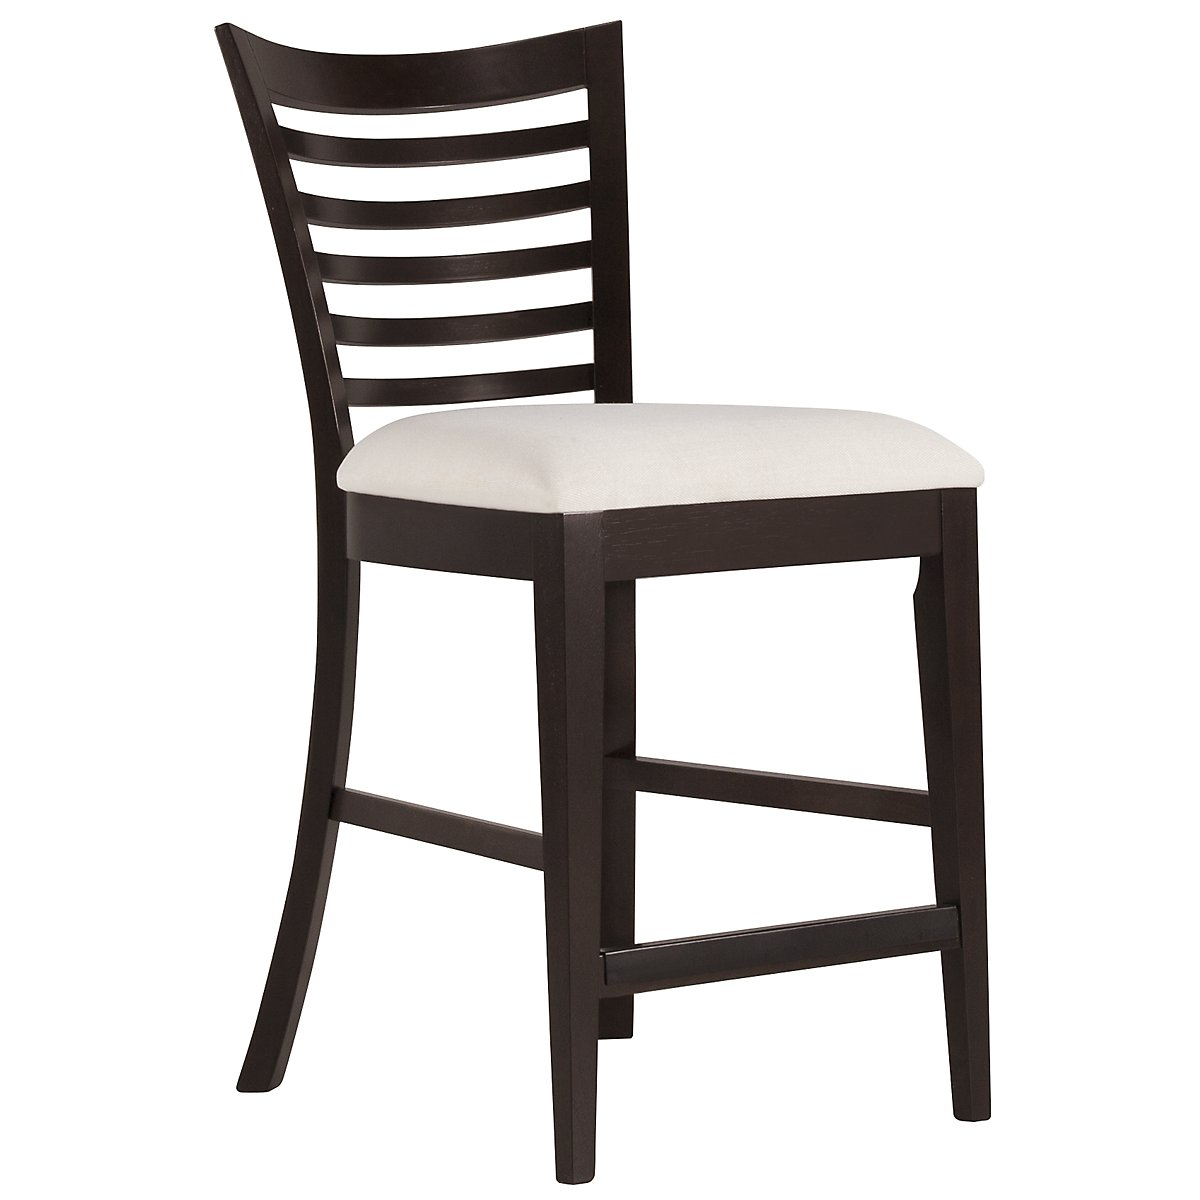 "Sanibel Dark Tone 24"" Wood Barstool"